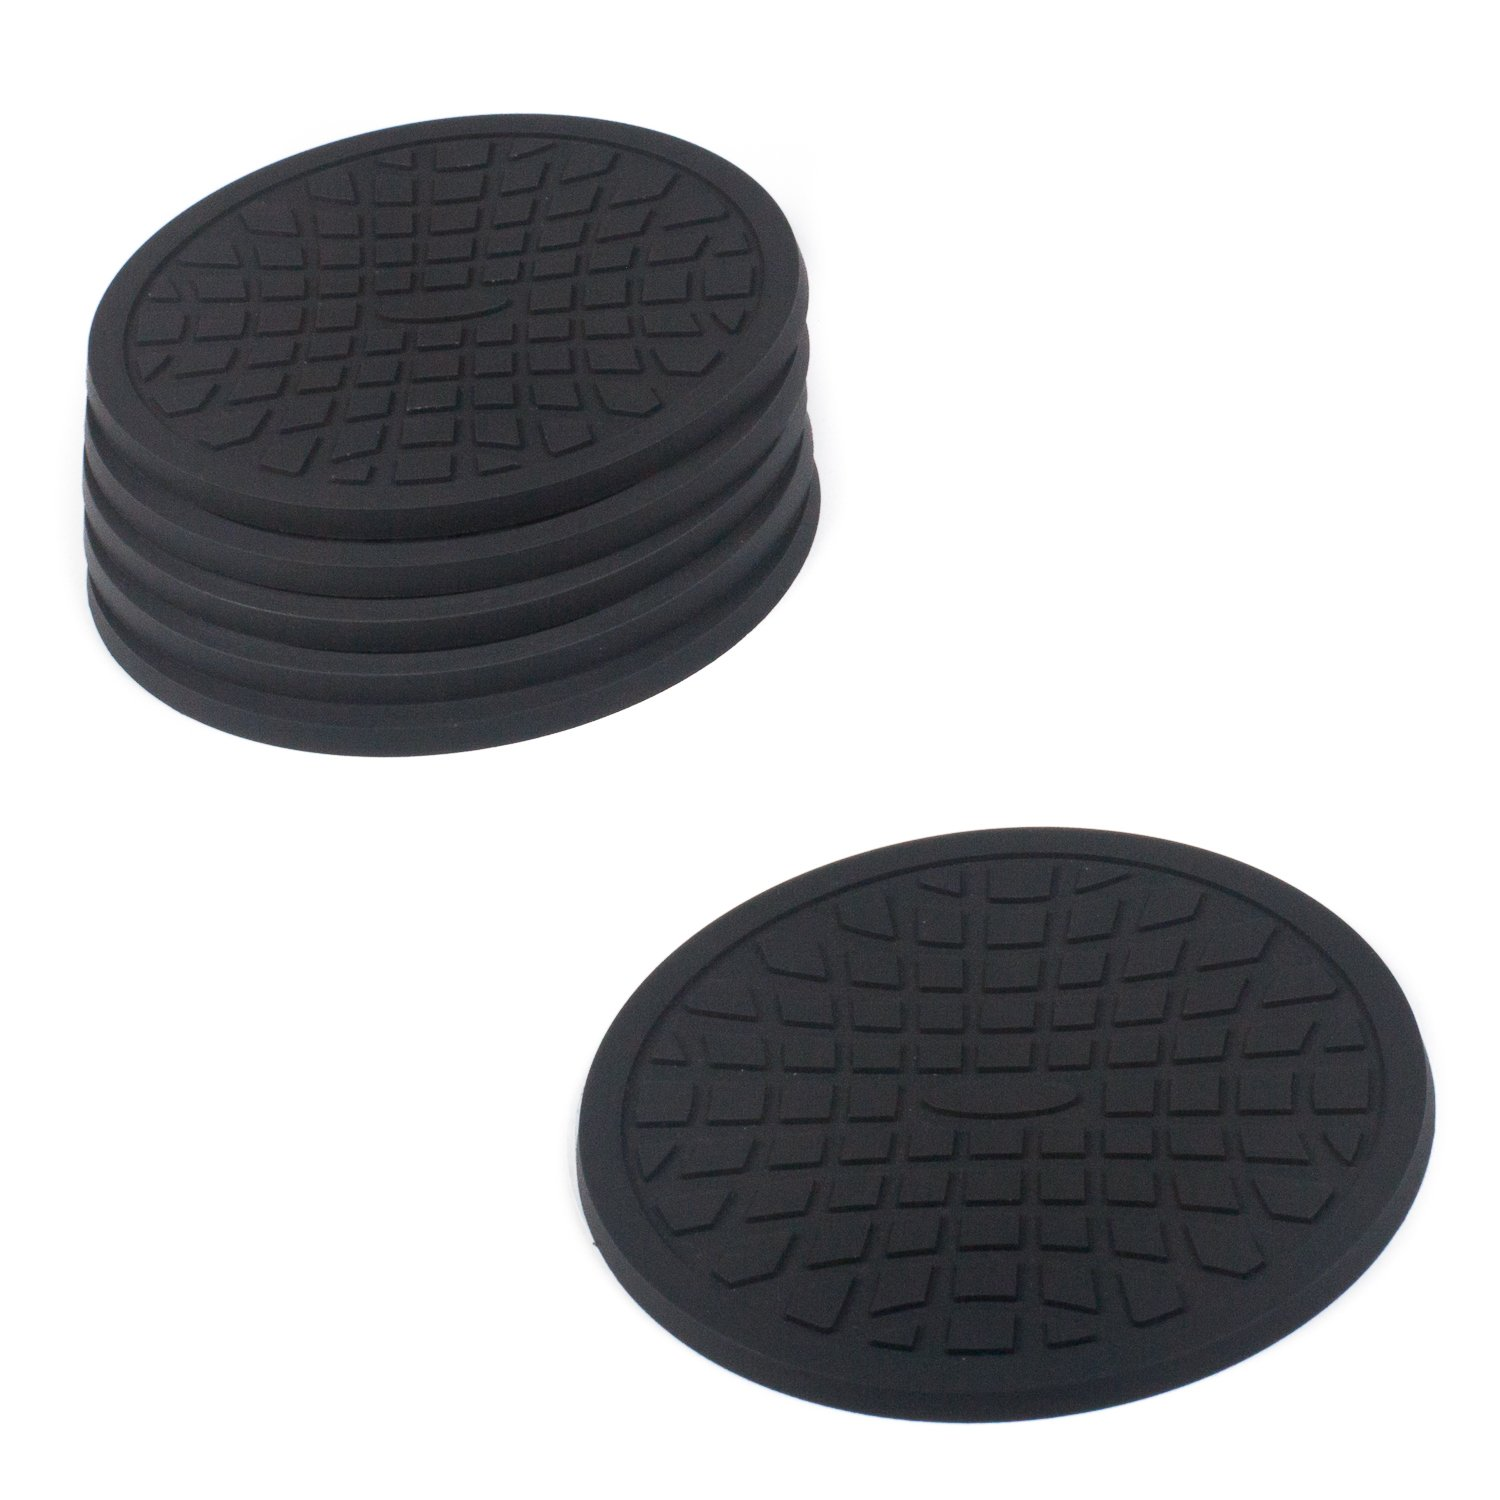 coasters by simple coasters  the best drink coasters and bar  - coasters by simple coasters  the best drink coasters and bar drink coasters these coasters for drinks won't stick to your glass  for indoors oroutdoors